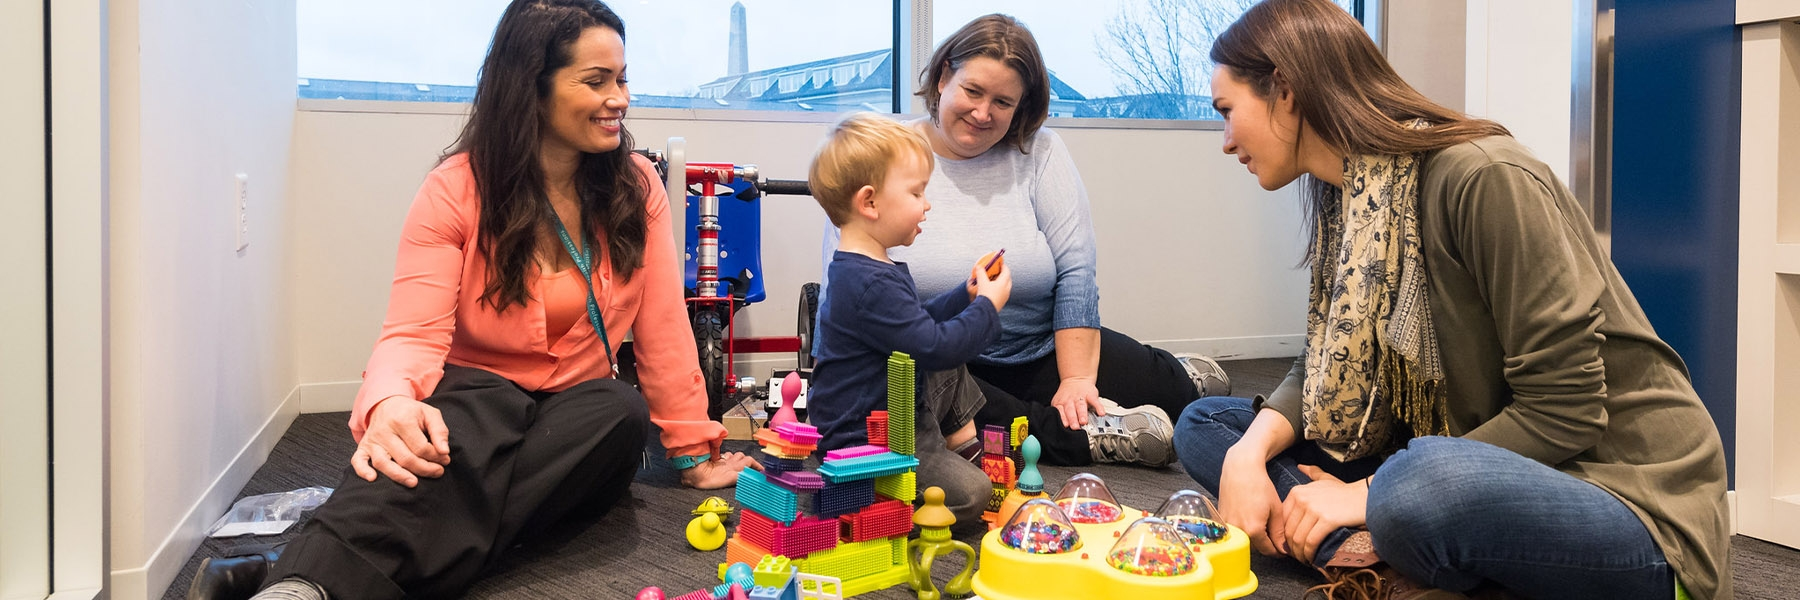 OT students sit with a child on the floor as he plays with toys